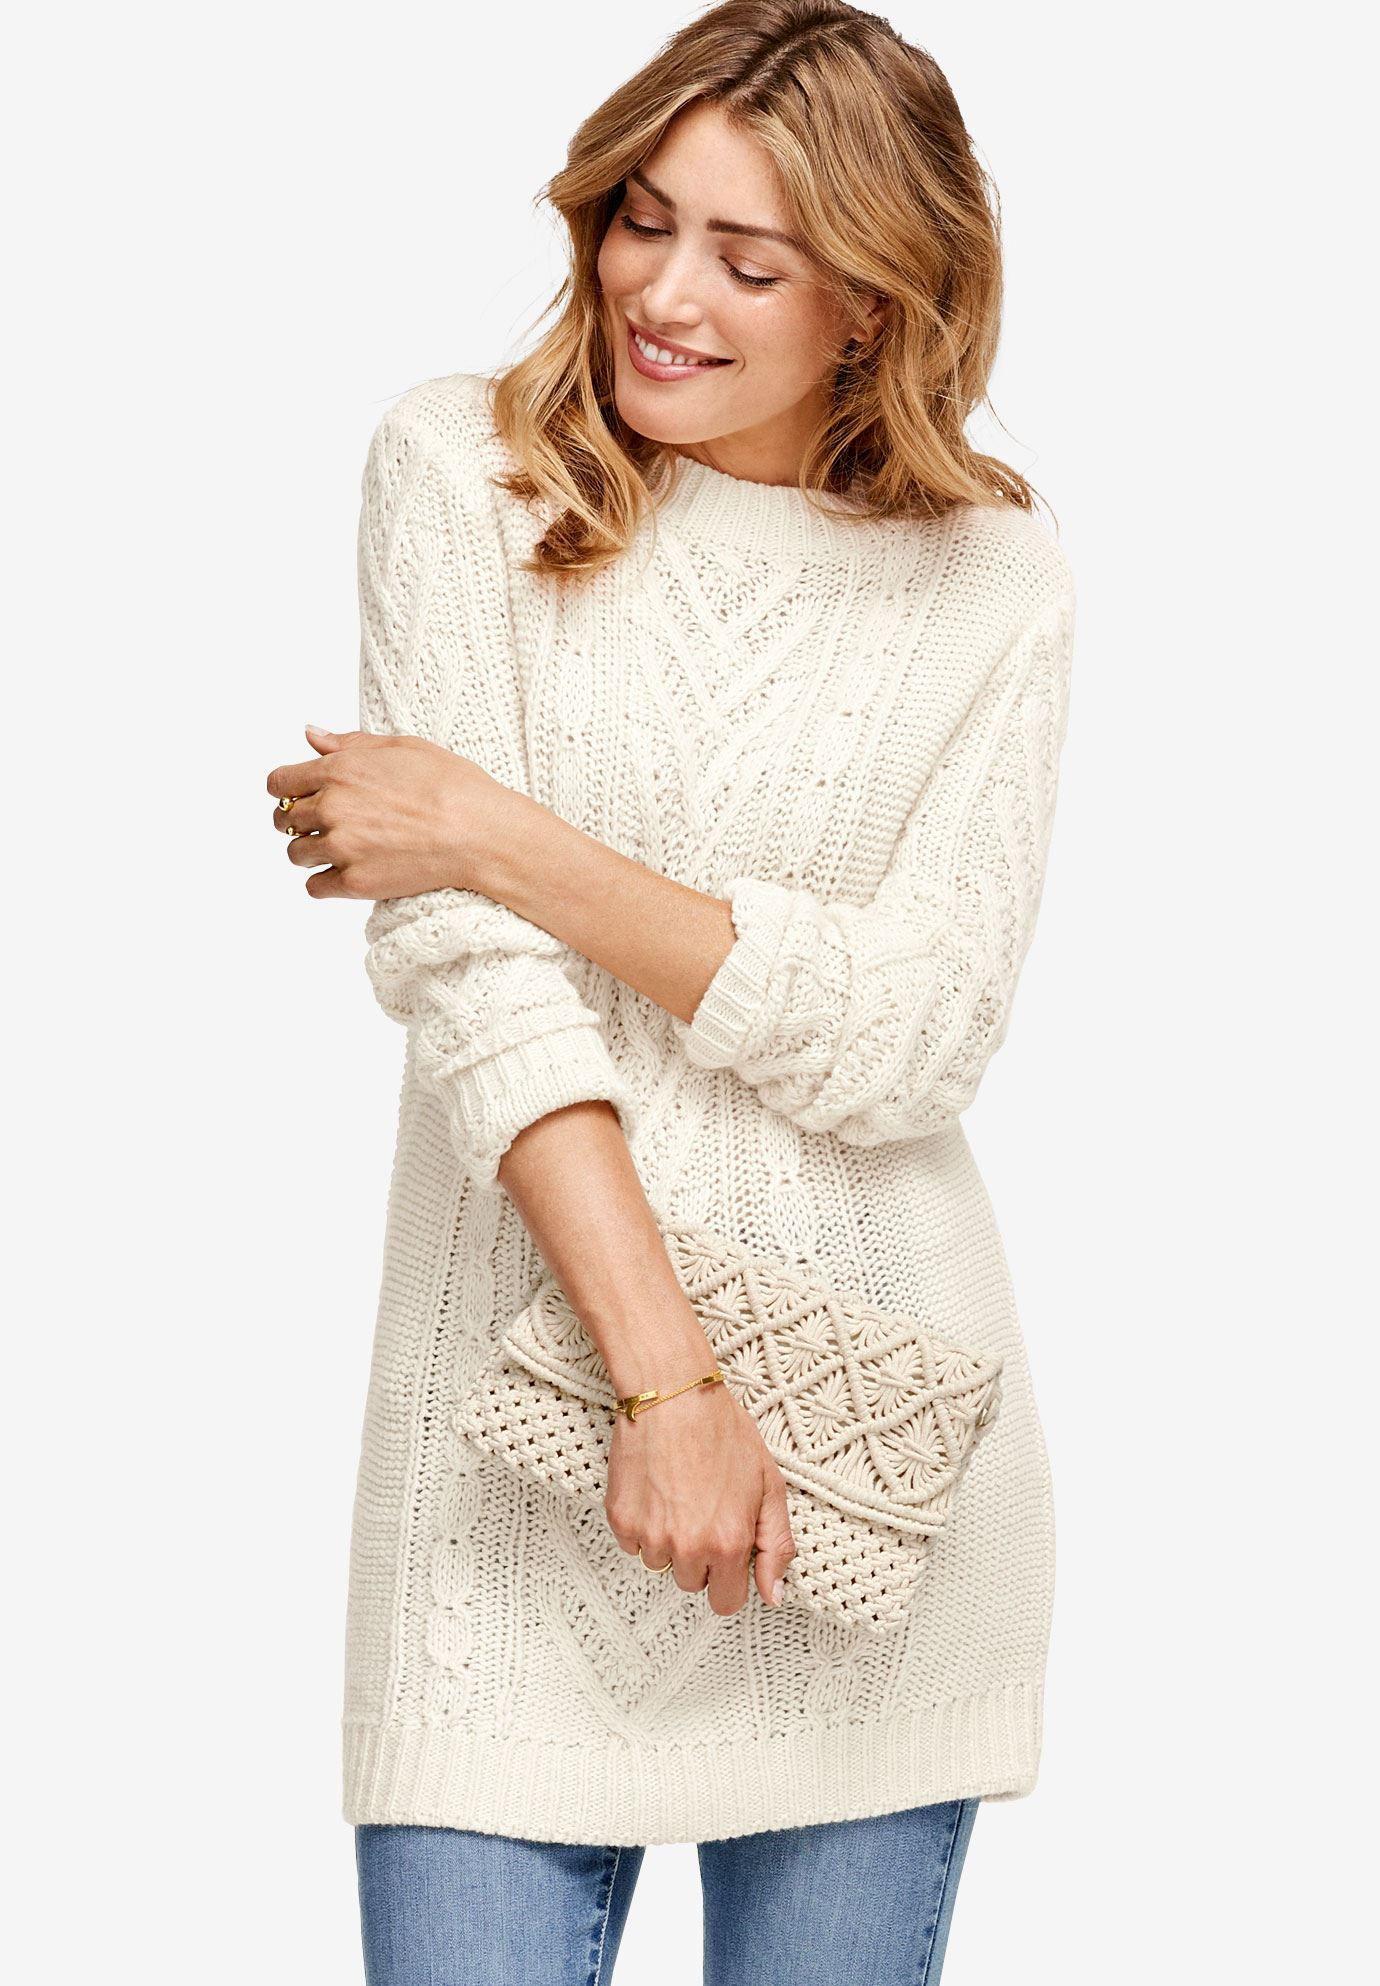 Pullover Cable Sweater Tunic By Ellos Plus Size Cardigans